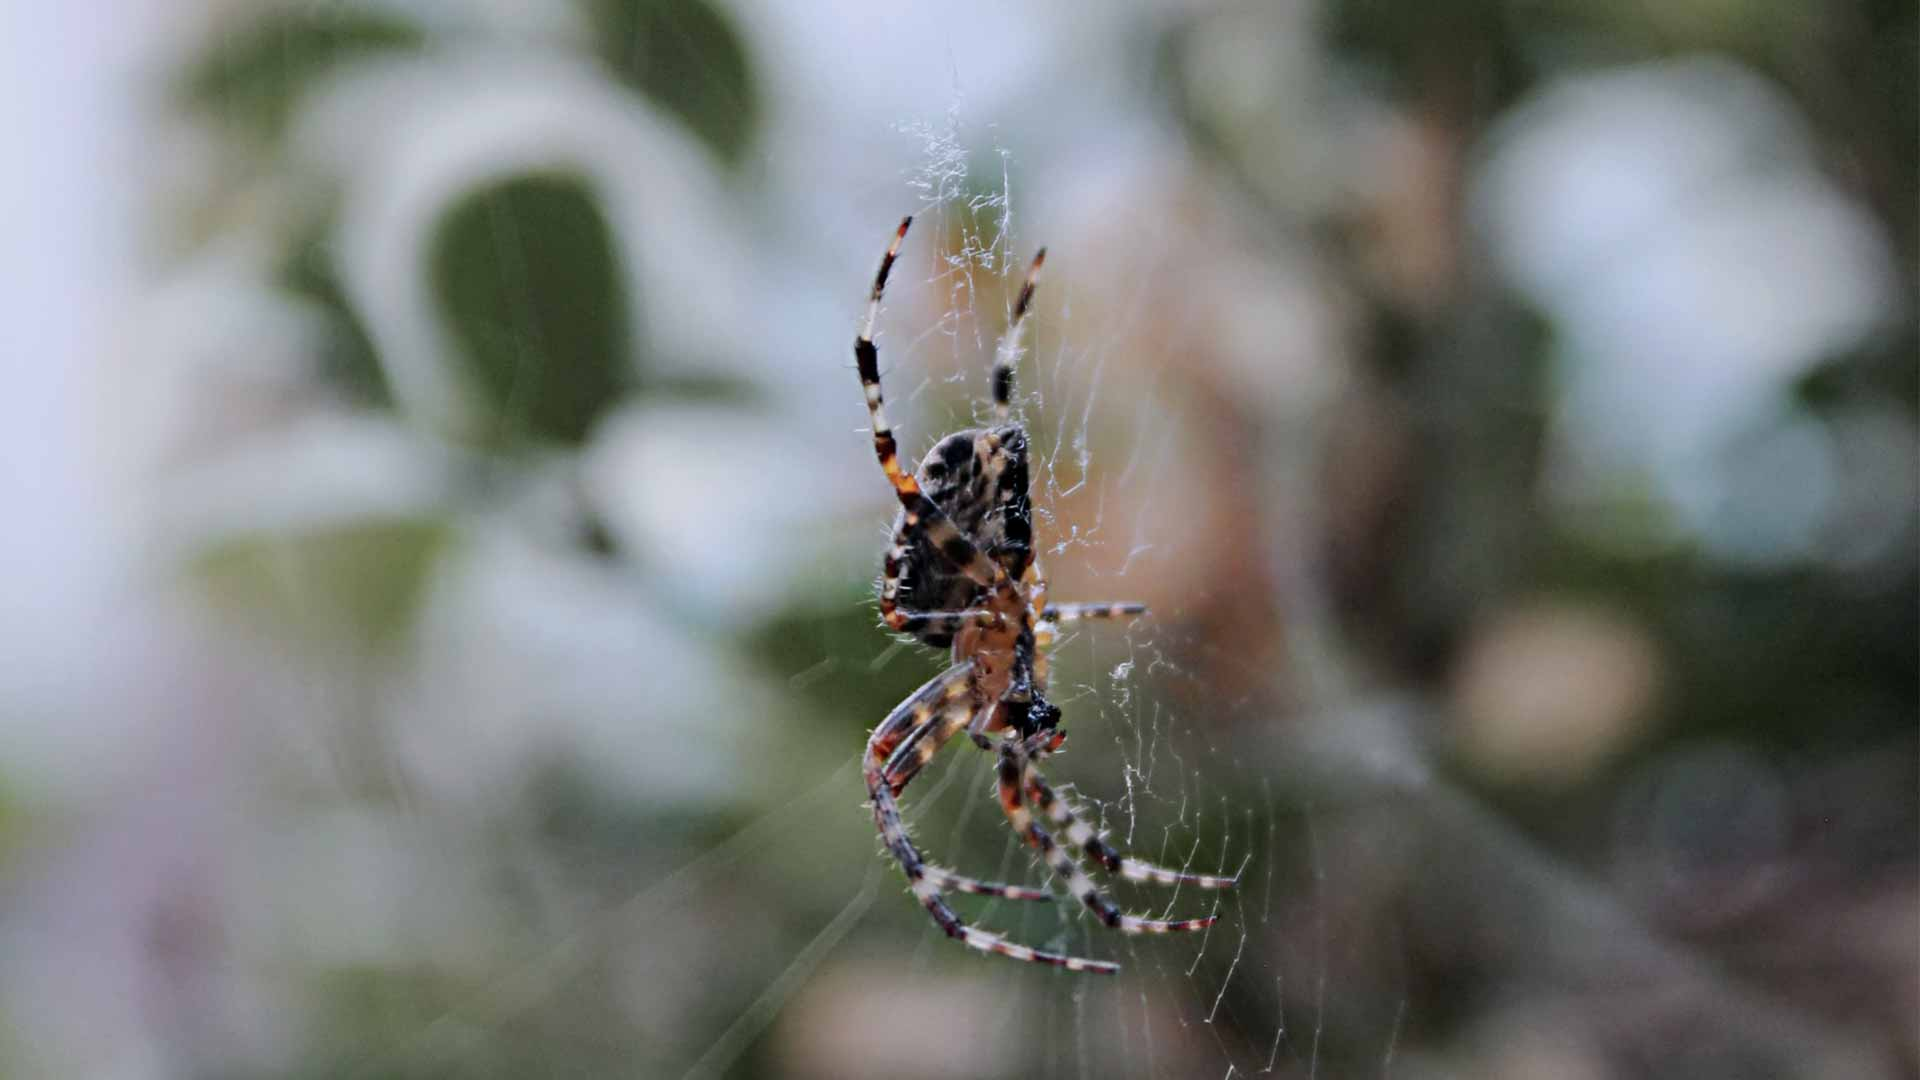 a spider in a web that will be removed through spider control